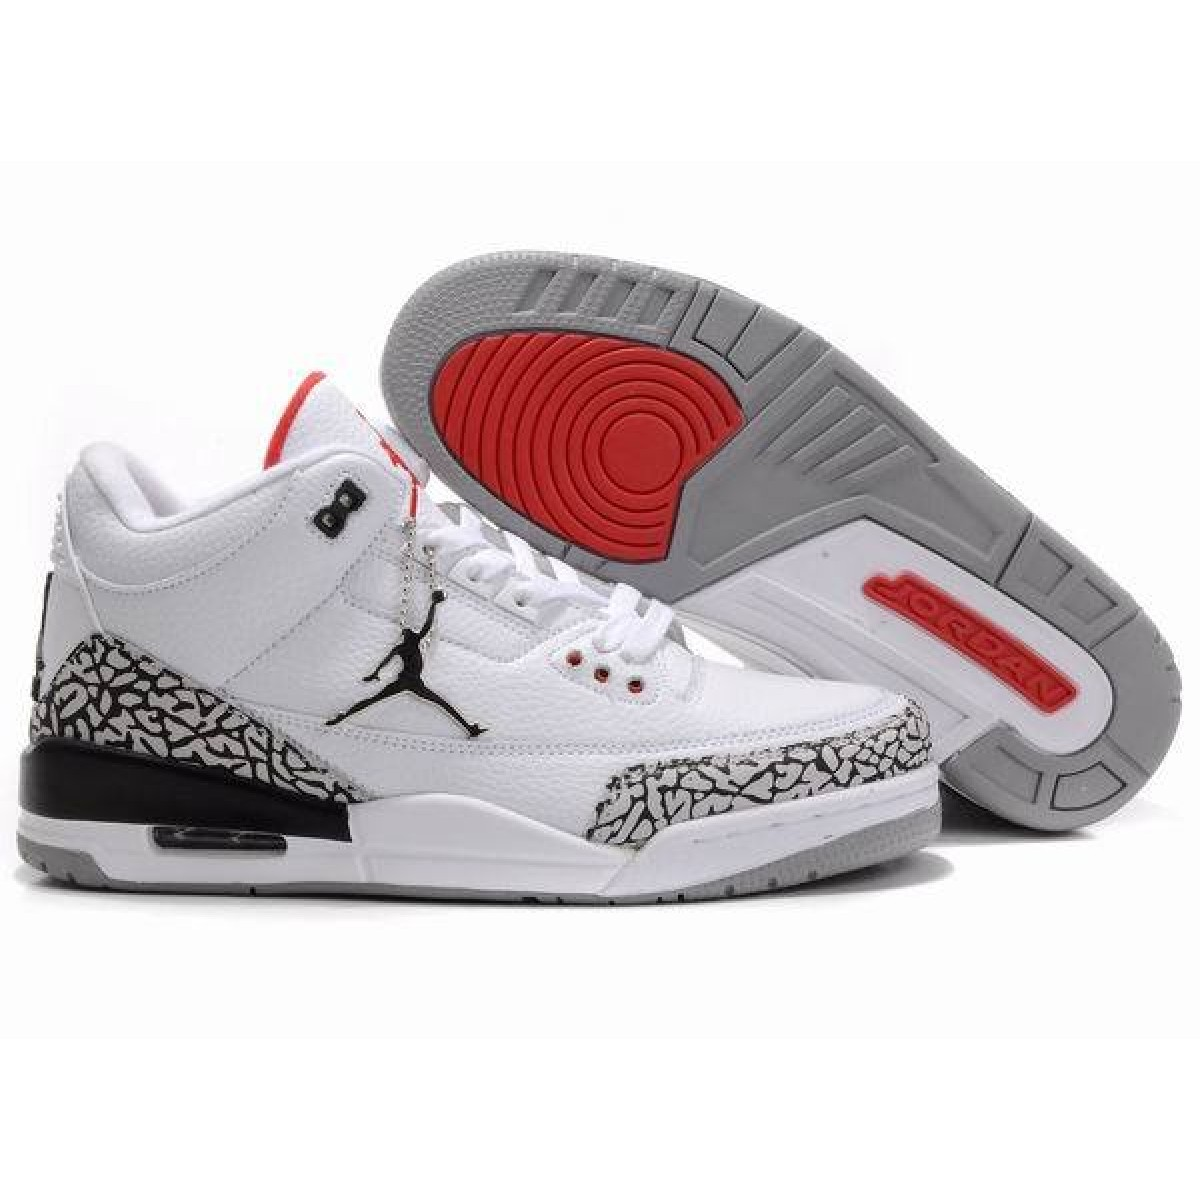 the best attitude 7872d 53575 Air jordan 3 Retro 88 White Fire Red-Cement Grey-Black